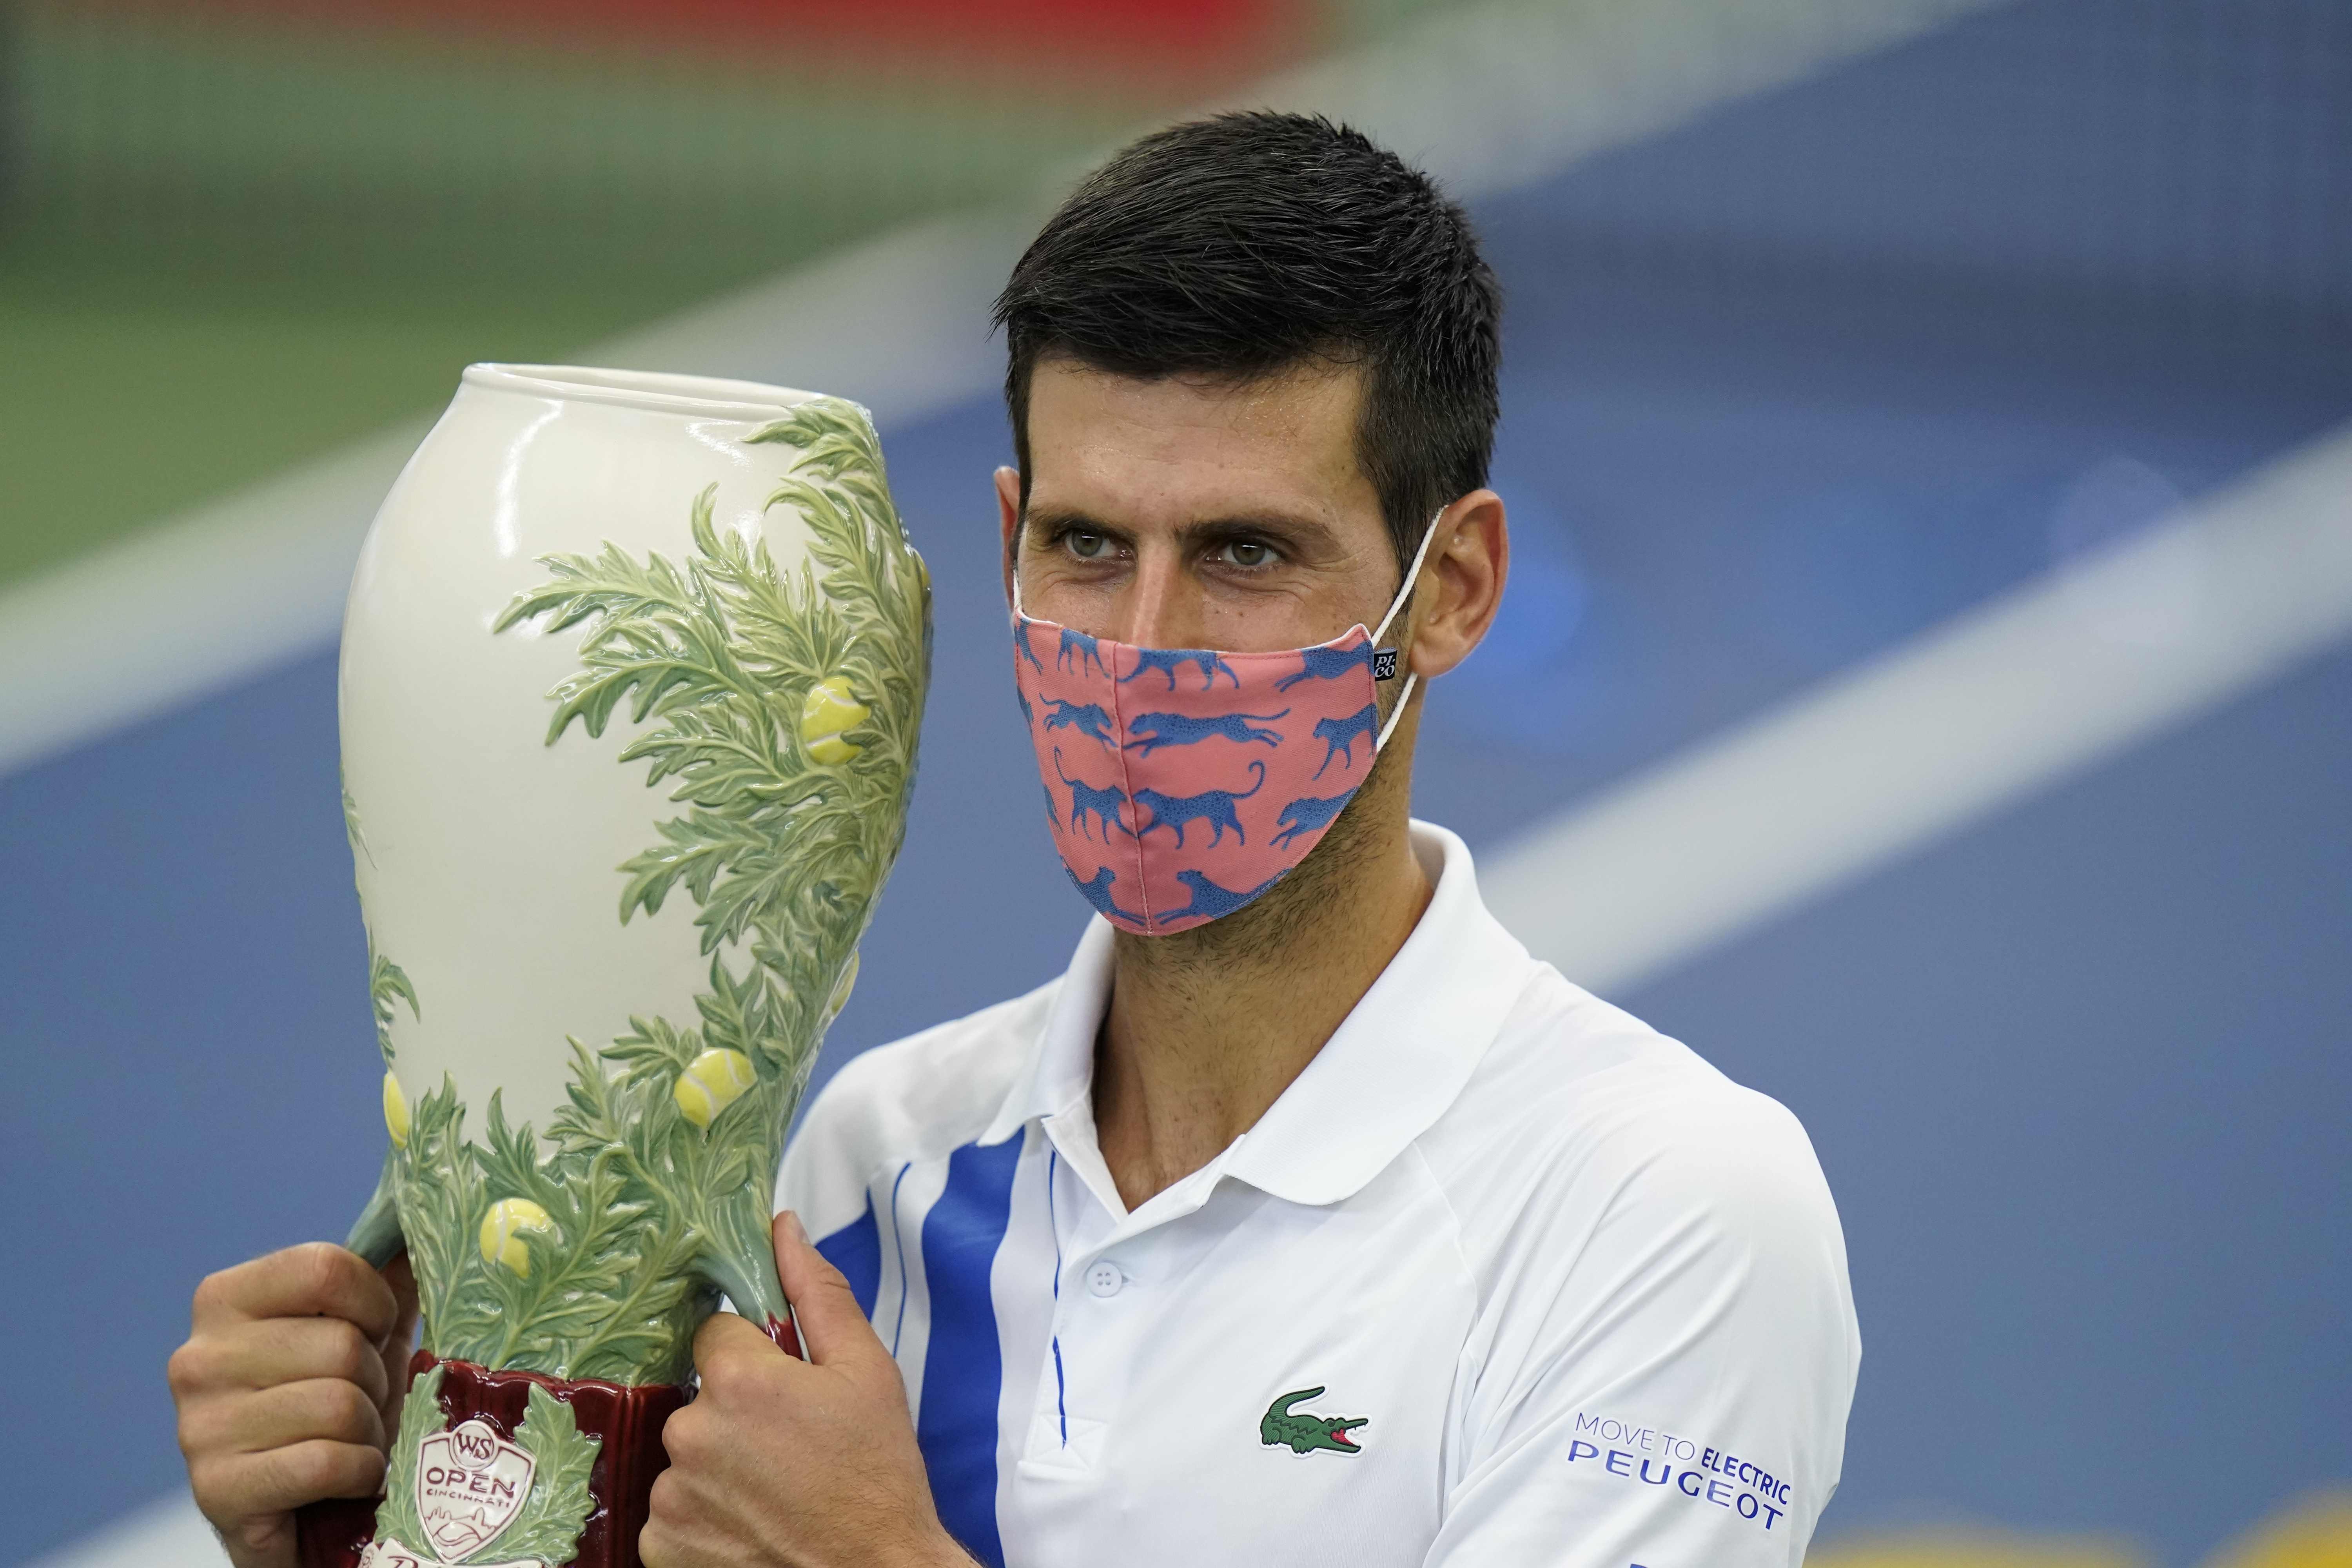 Novak Djokovic S New Players Association Proposal Divides Tennis At A Difficult Time The Washington Post